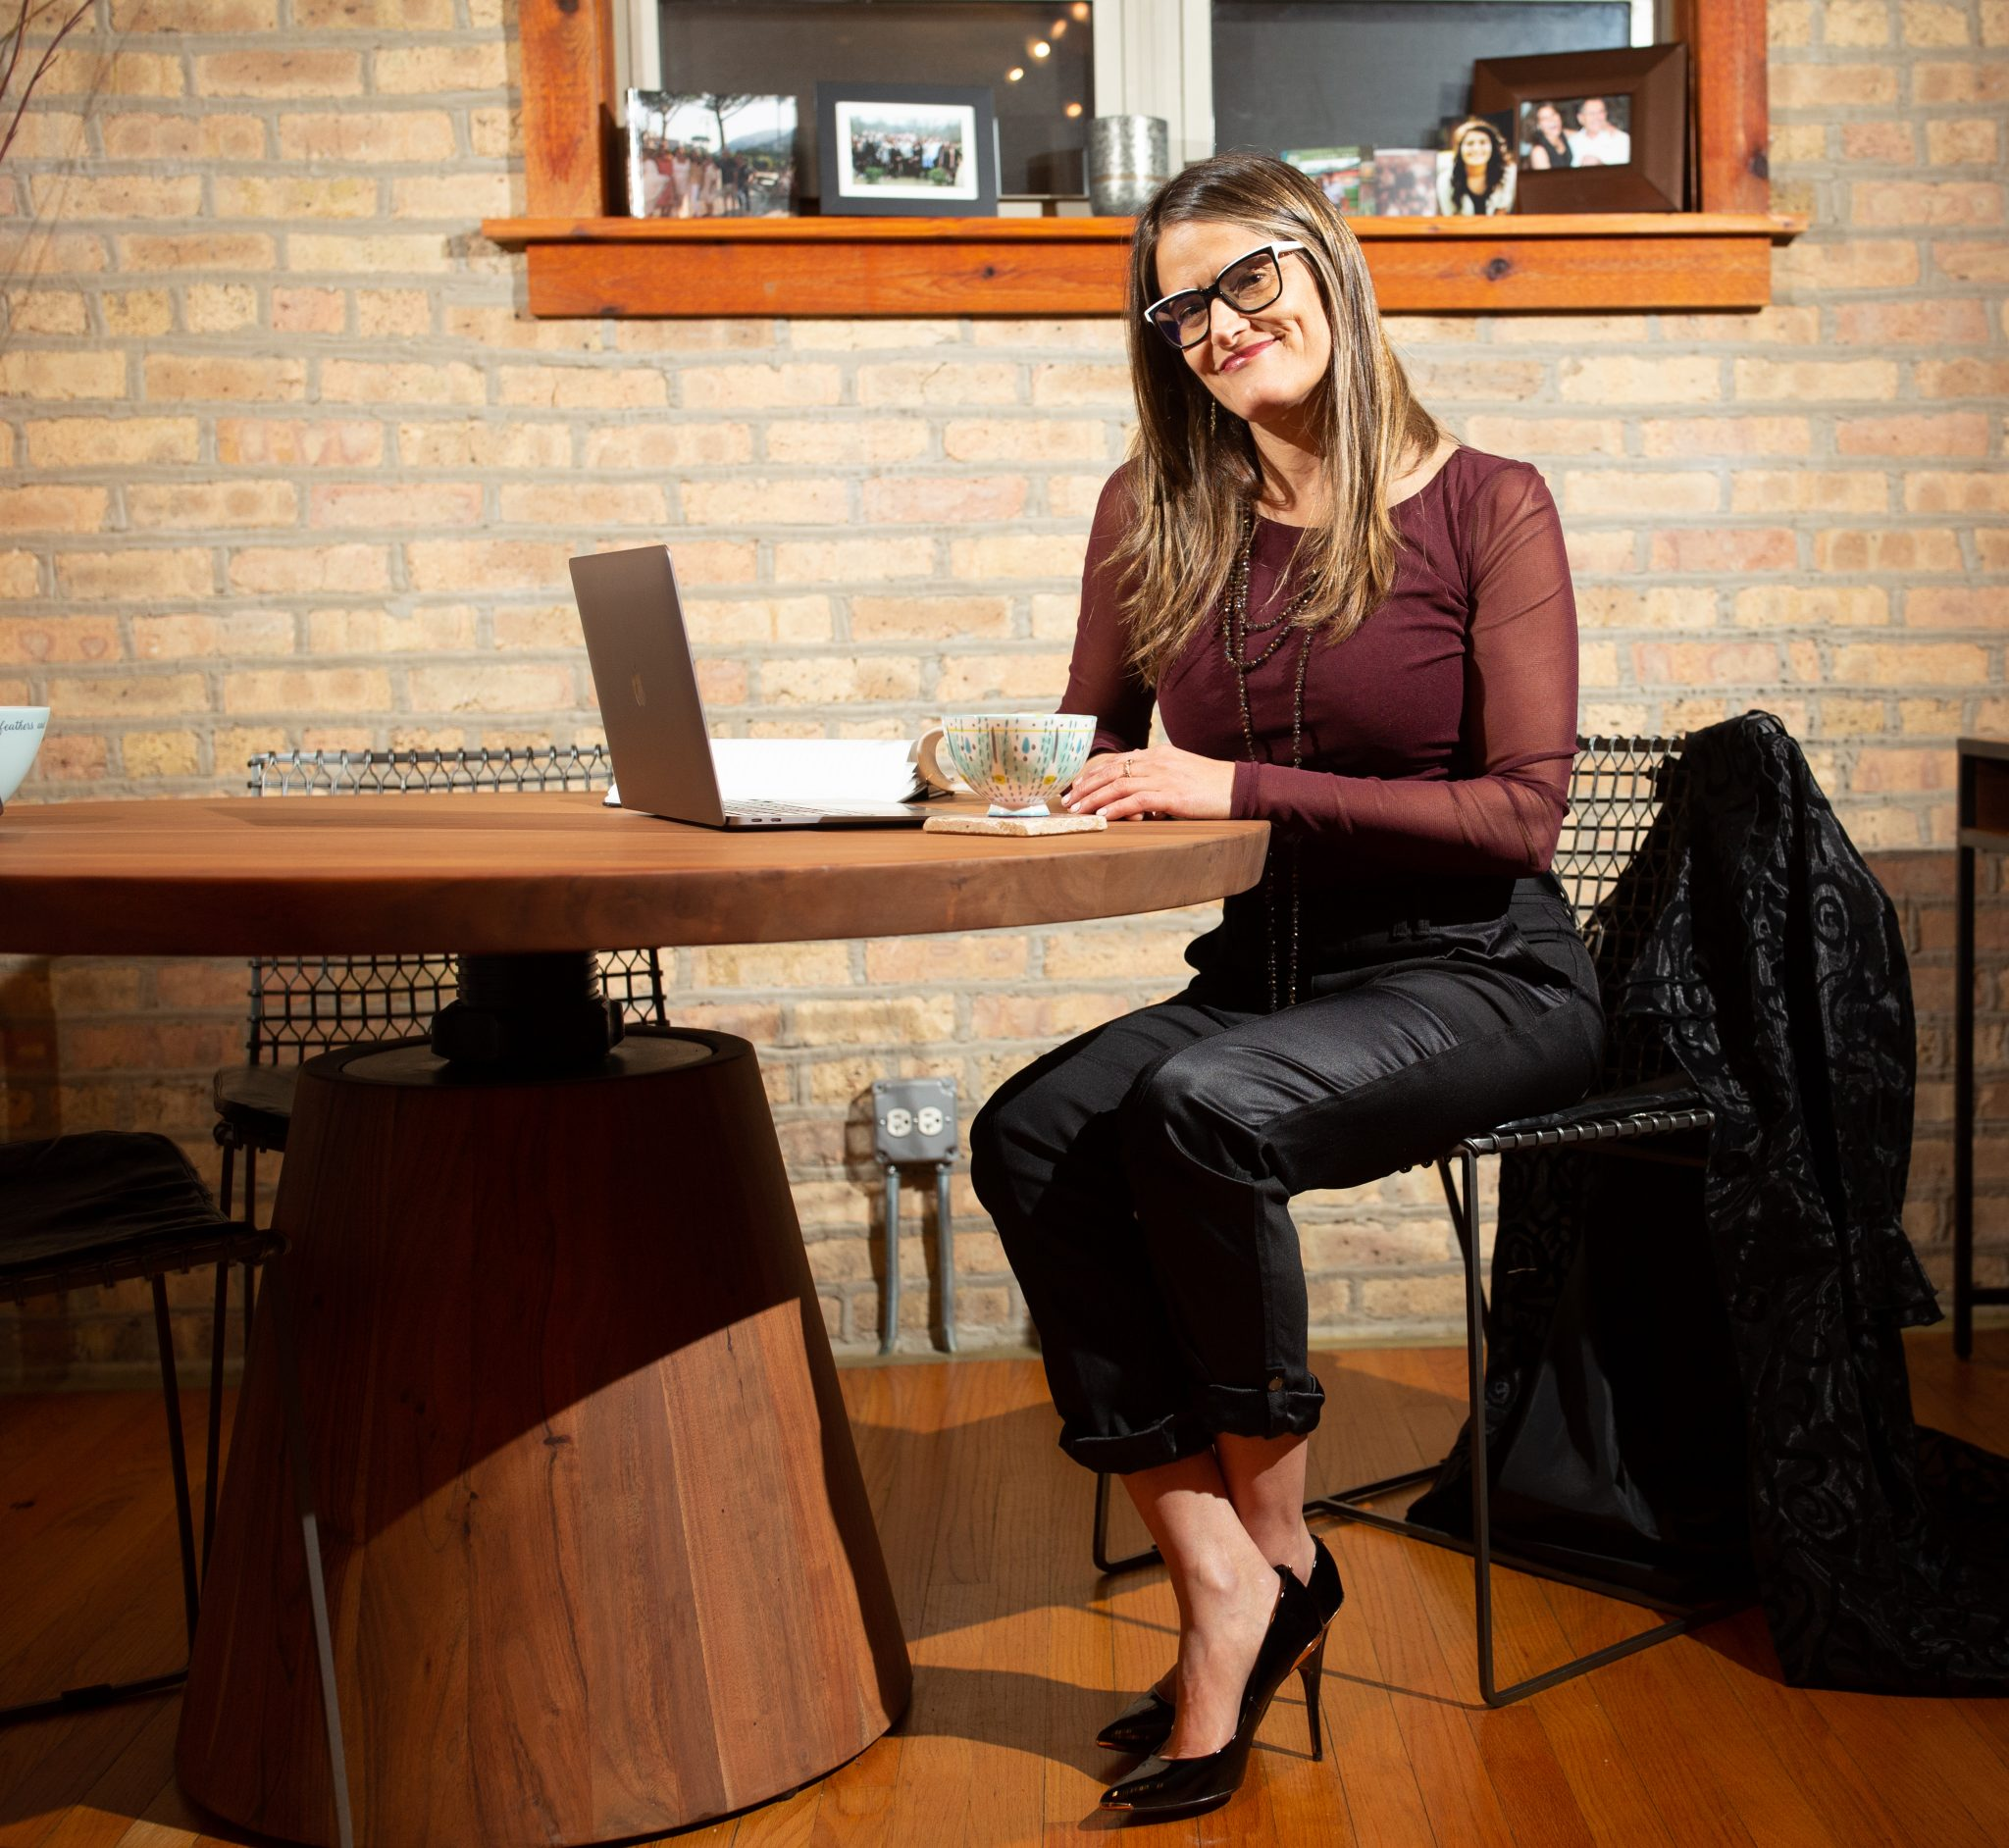 Woman sitting at table with glasses typing and smiling